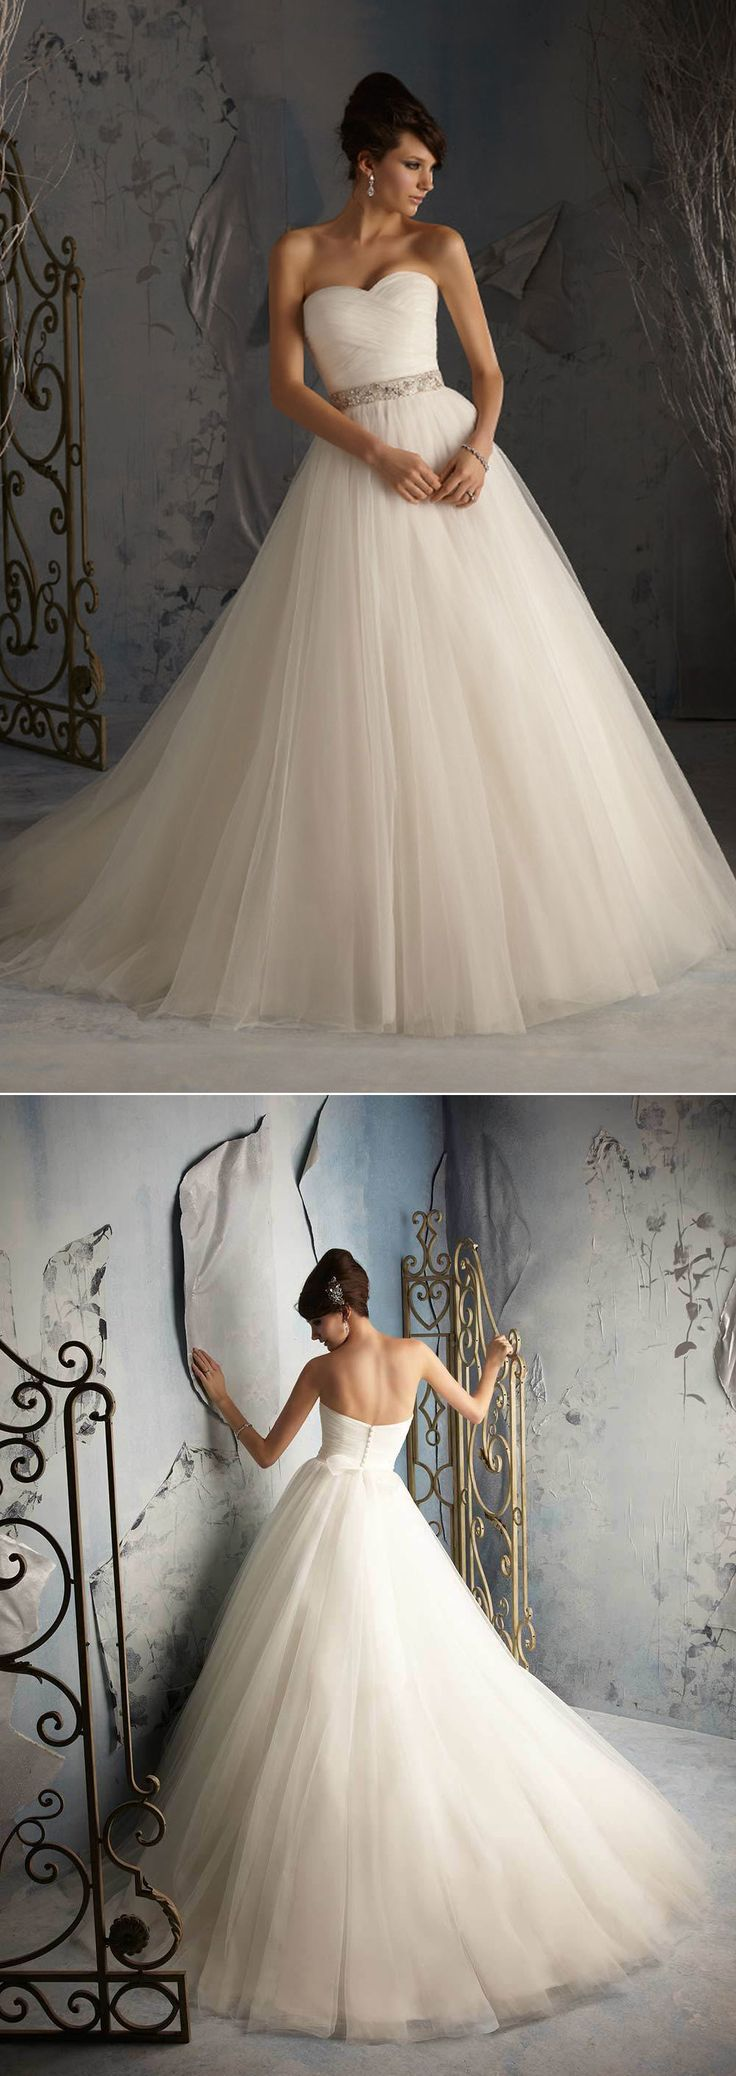 Blu by Mori Lee wedding gown from @weddingshoppe